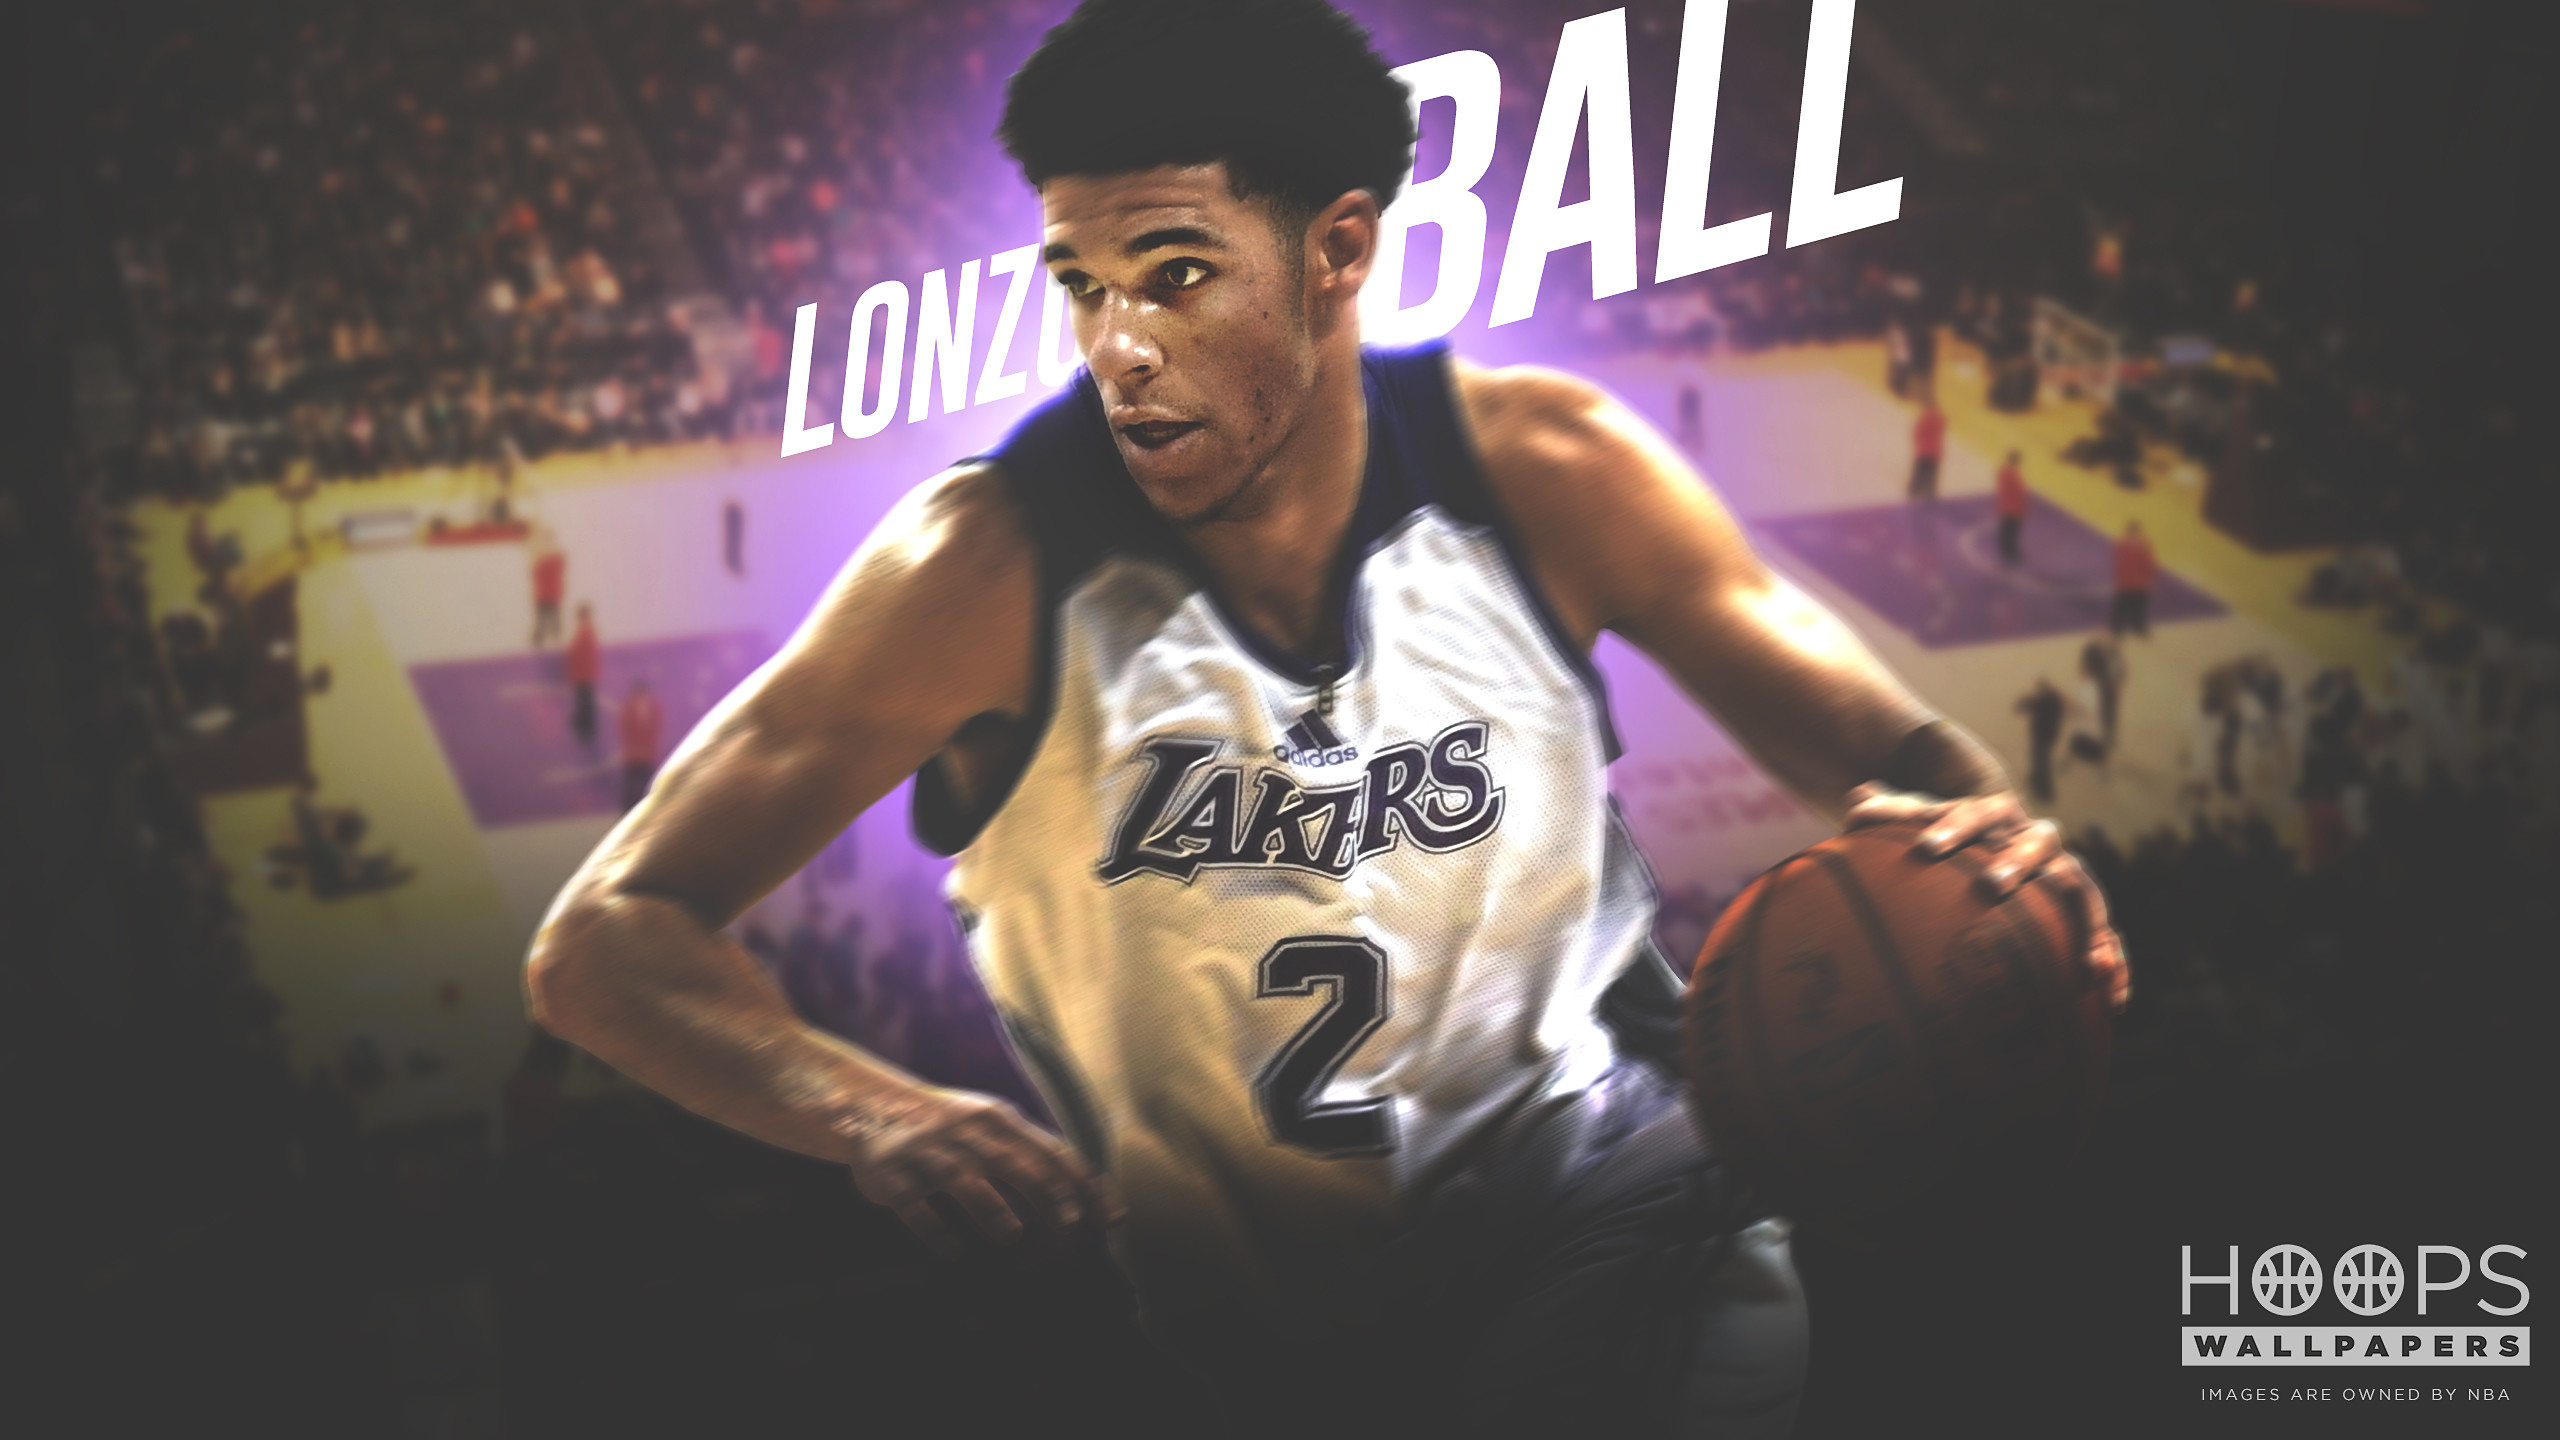 Lonzo Ball Wallpapers 70 images 2560x1440